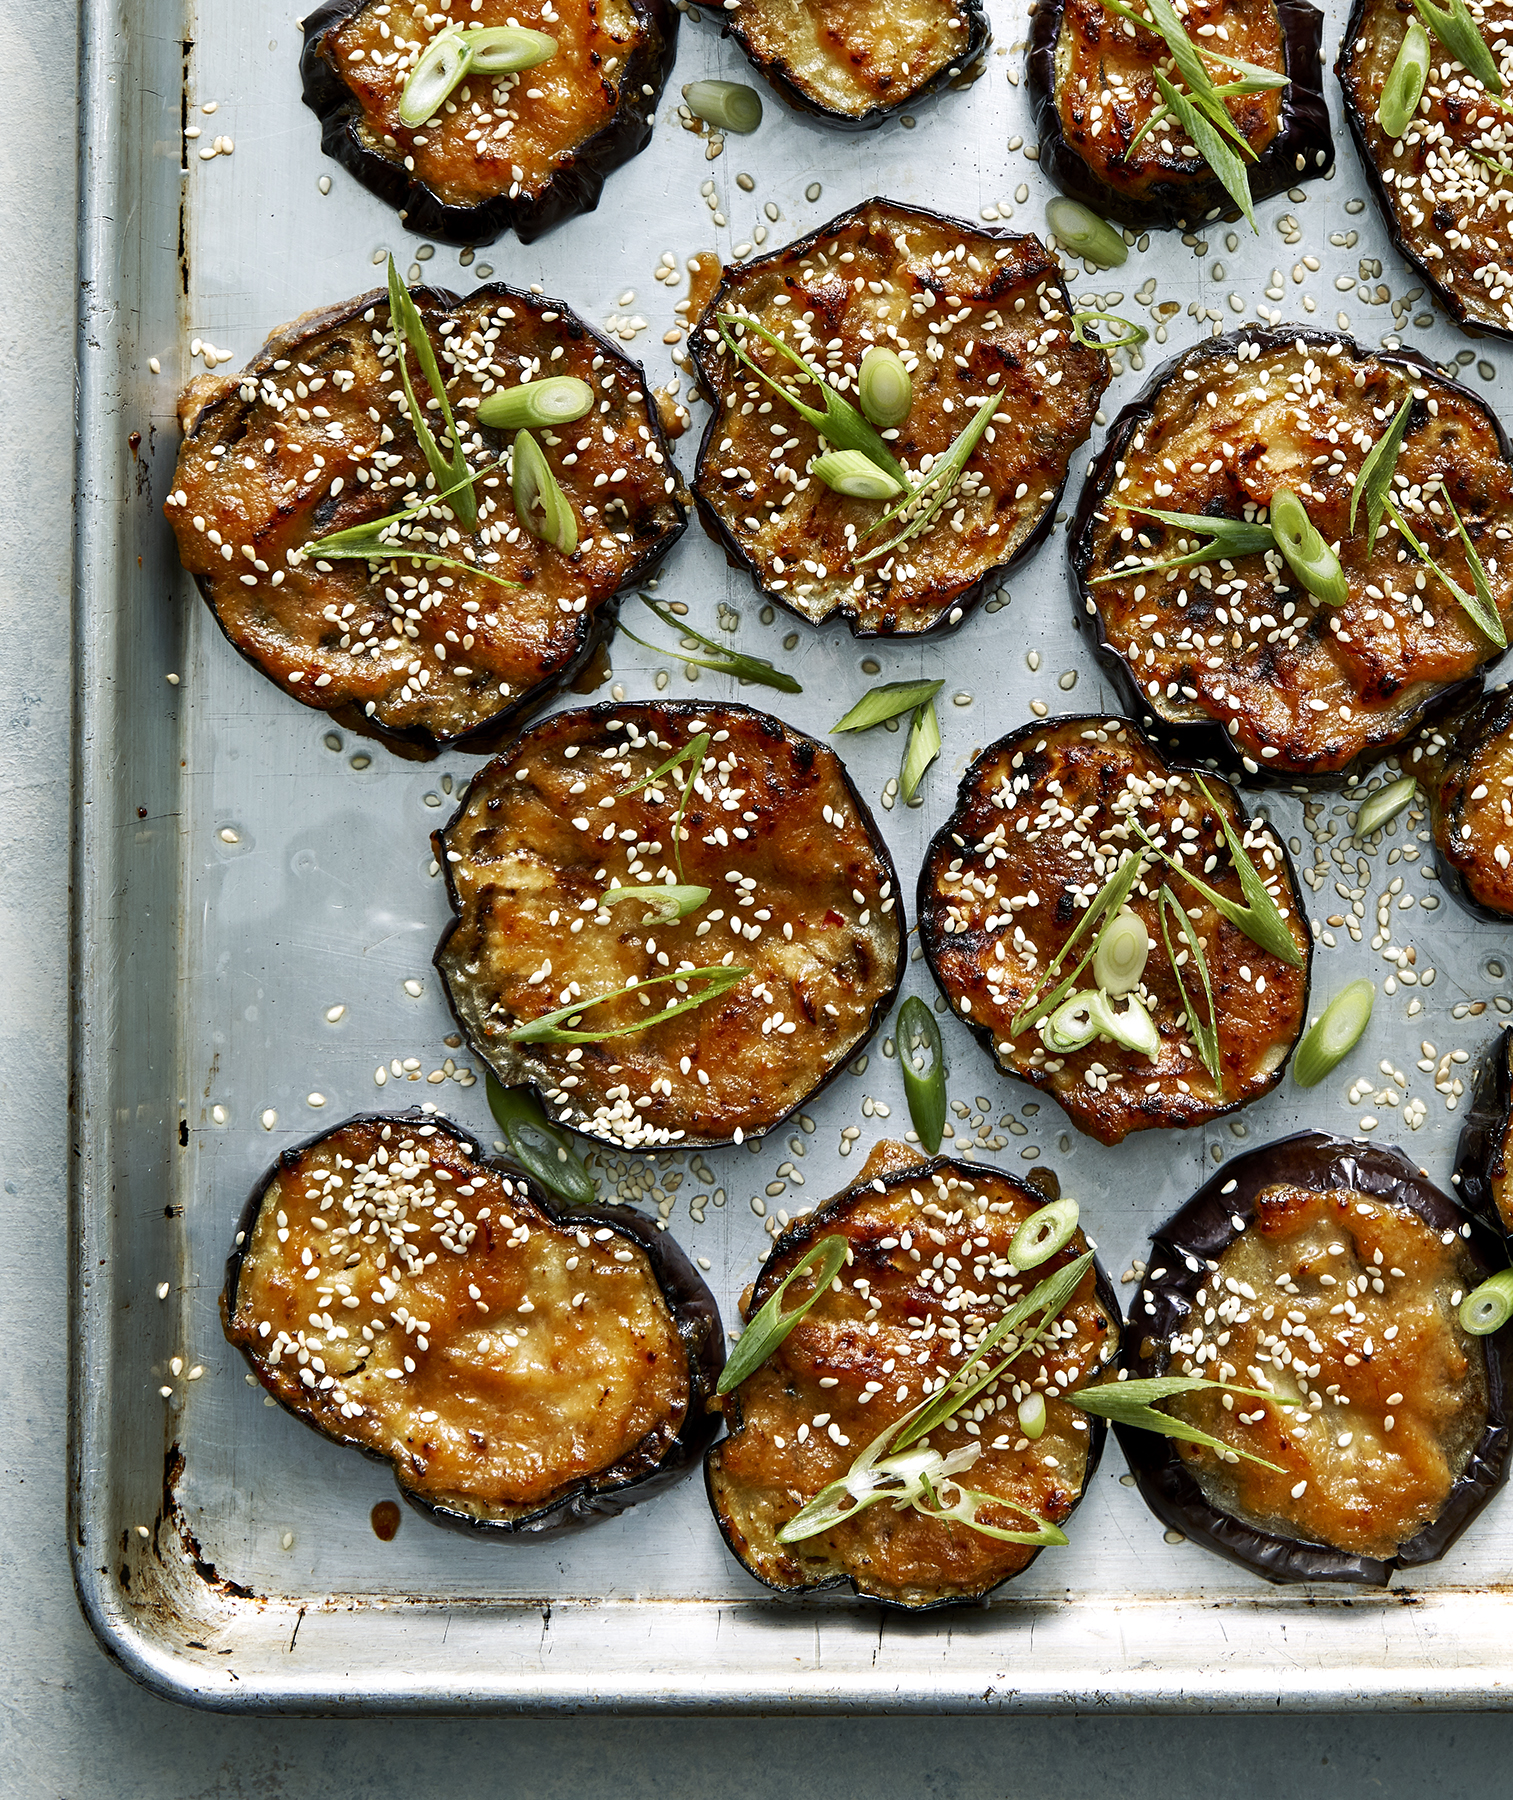 Clone of Roasted Eggplant With Miso and Sesame Seeds (Roasting Recipes)